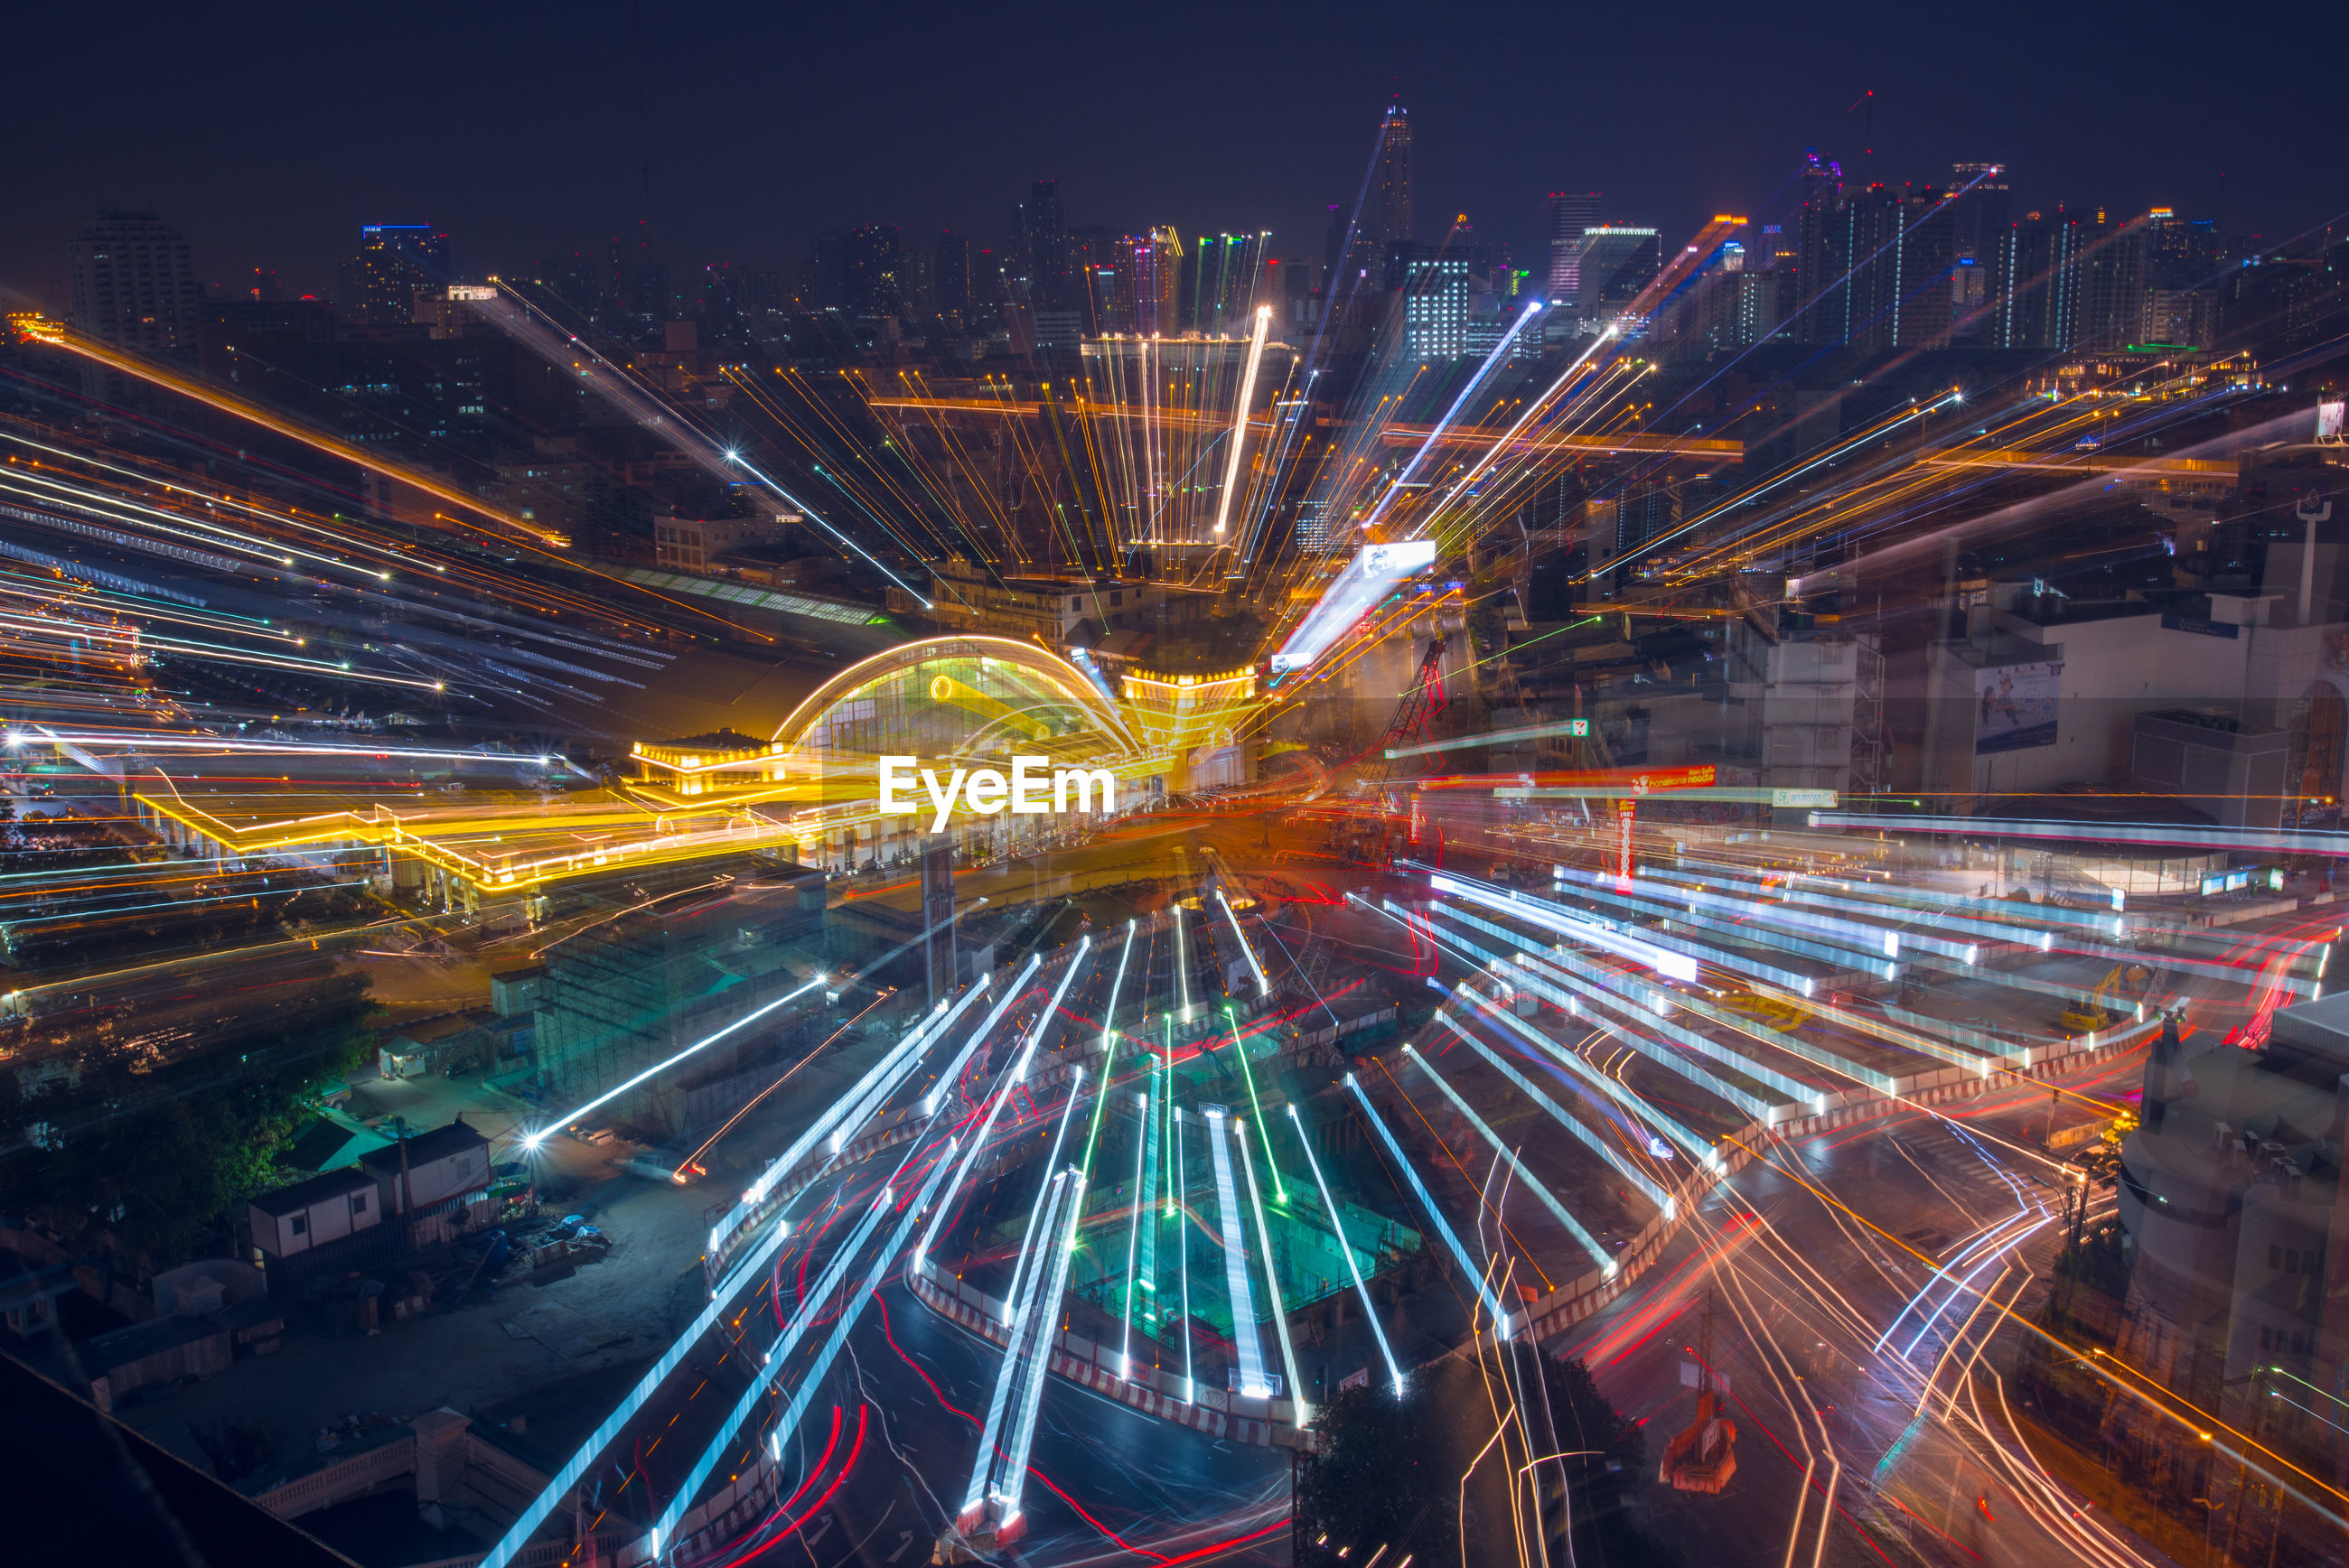 High angle view of light trails in illuminated cityscape at night